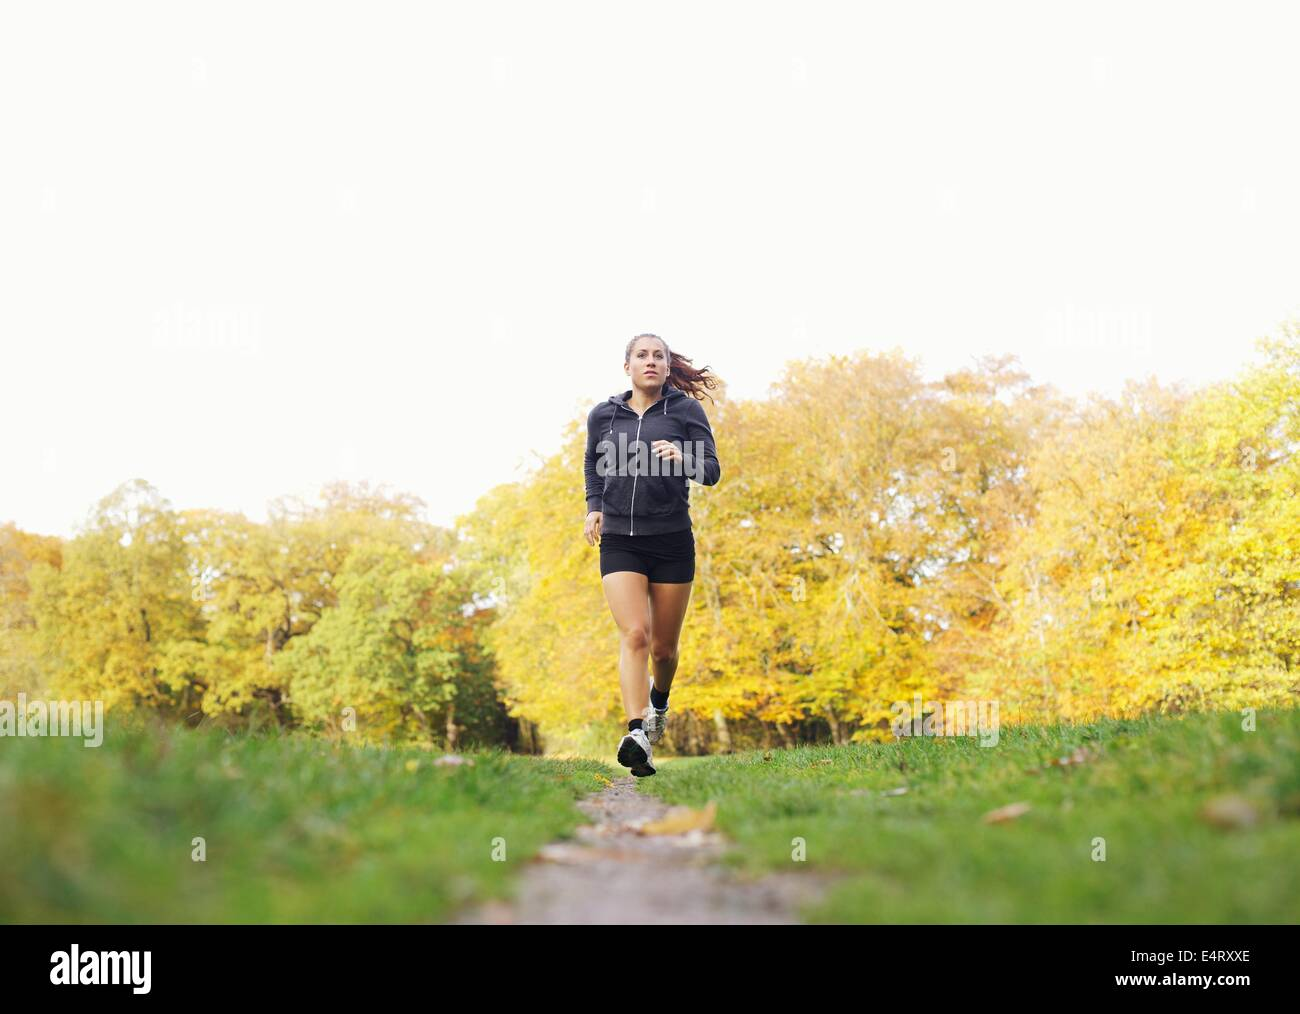 Fit and healthy young woman running outside in park. Fitness model in sports clothing jogging outdoors. Health and - Stock Image